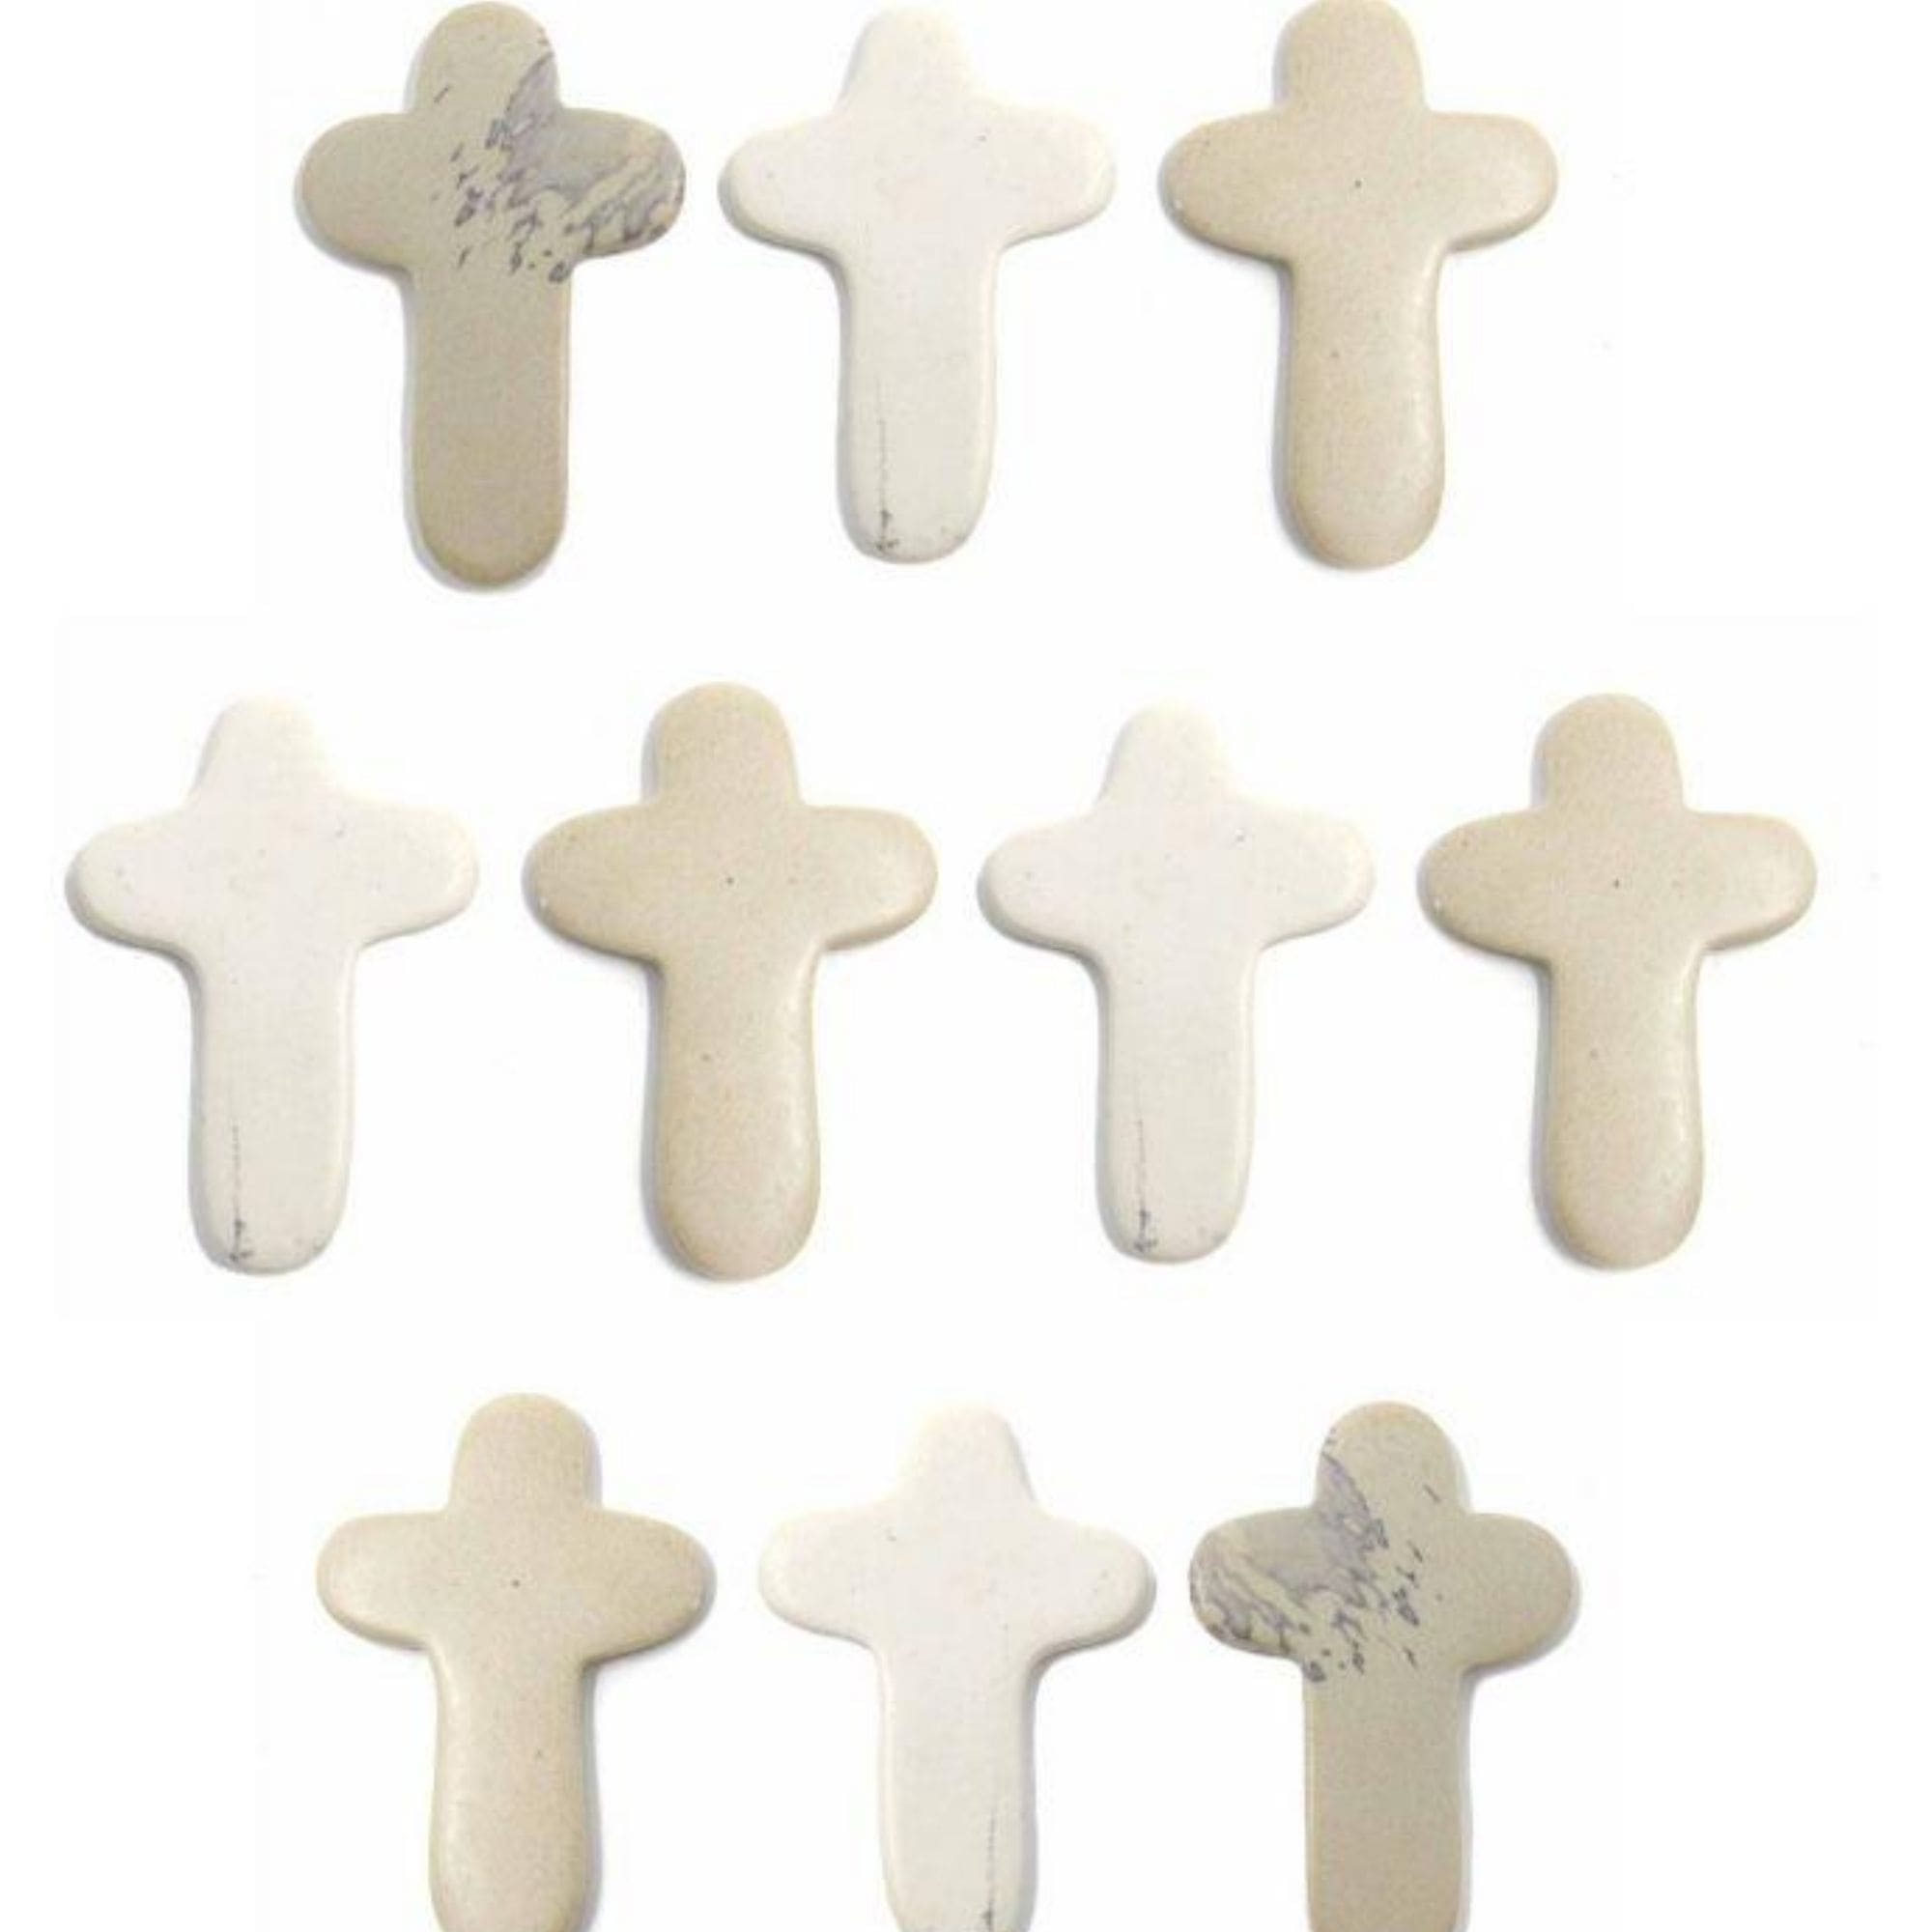 Set of 10 Comfort Crosses